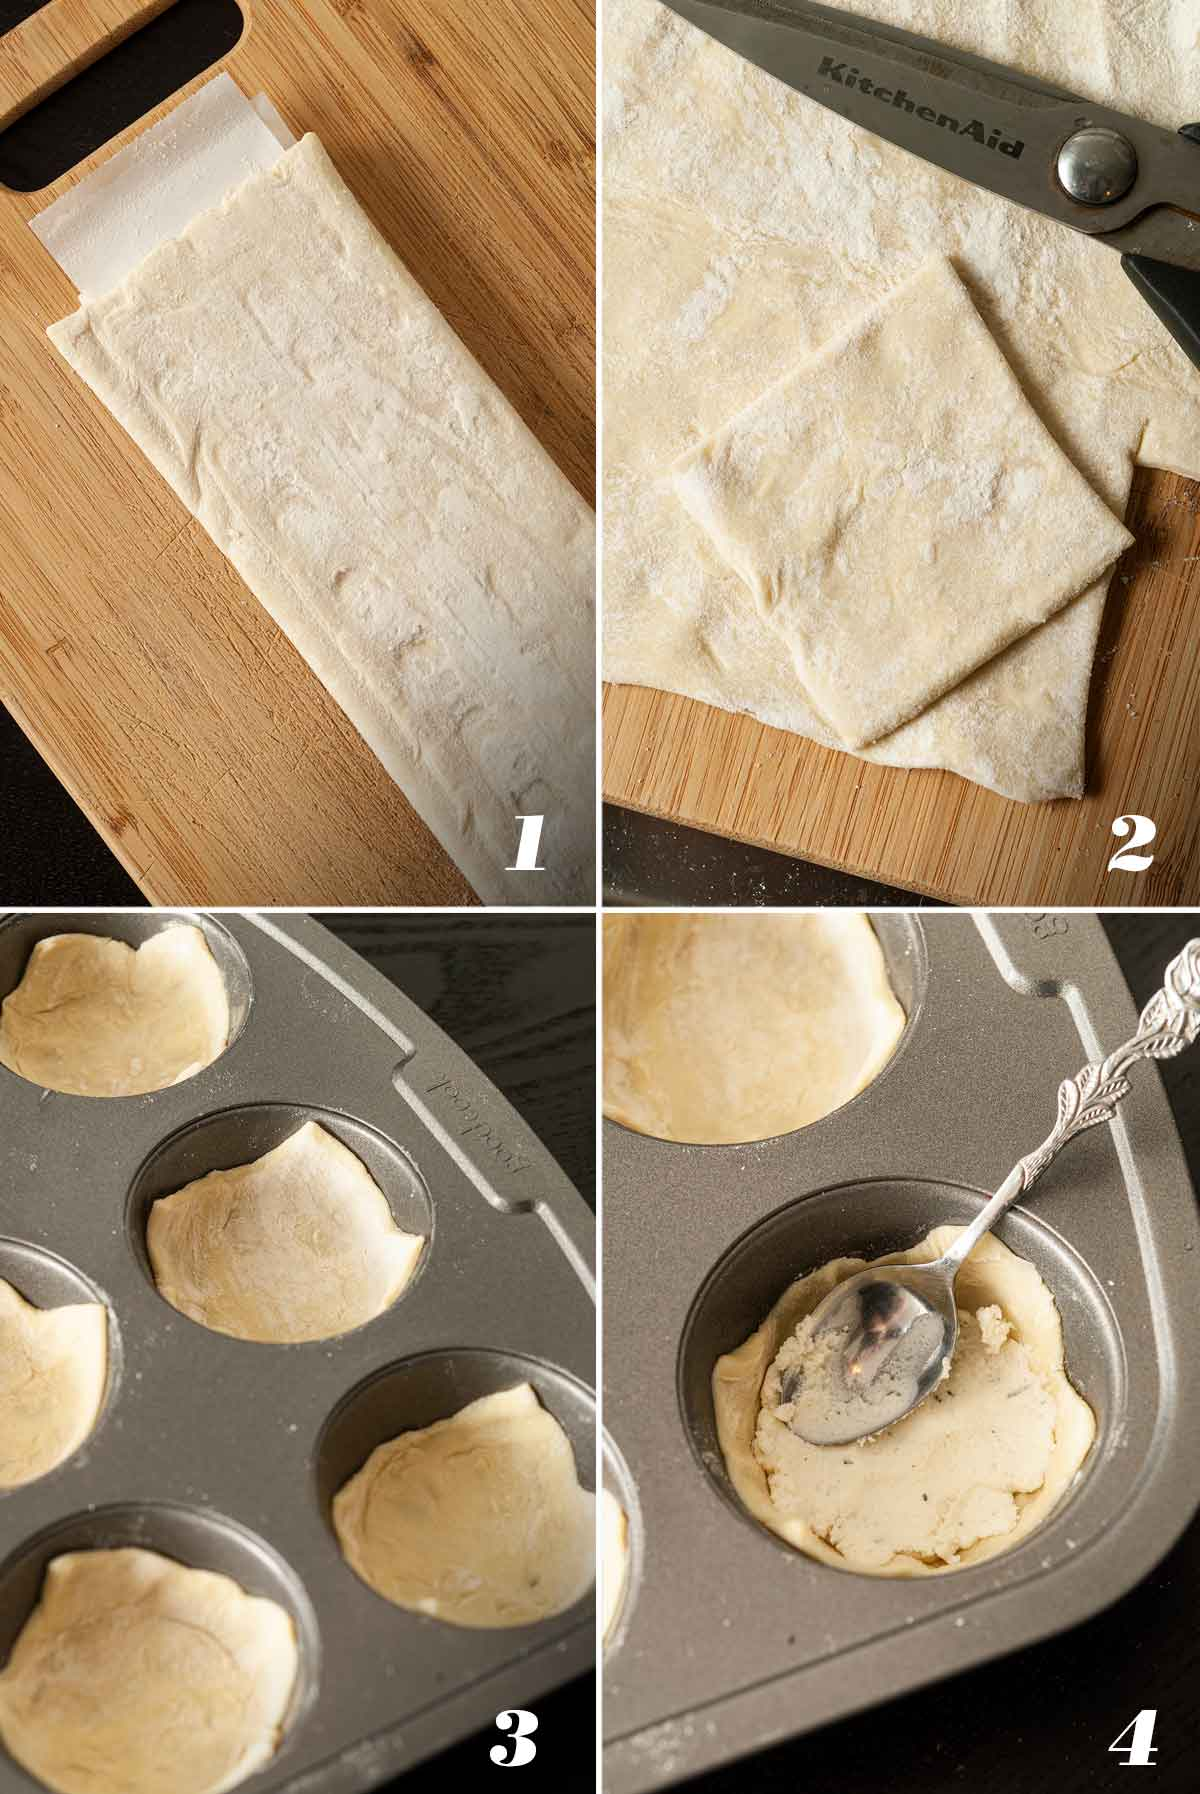 A collage of 4 numbered images showing how to cut and place puff pastry in cupcake tins.